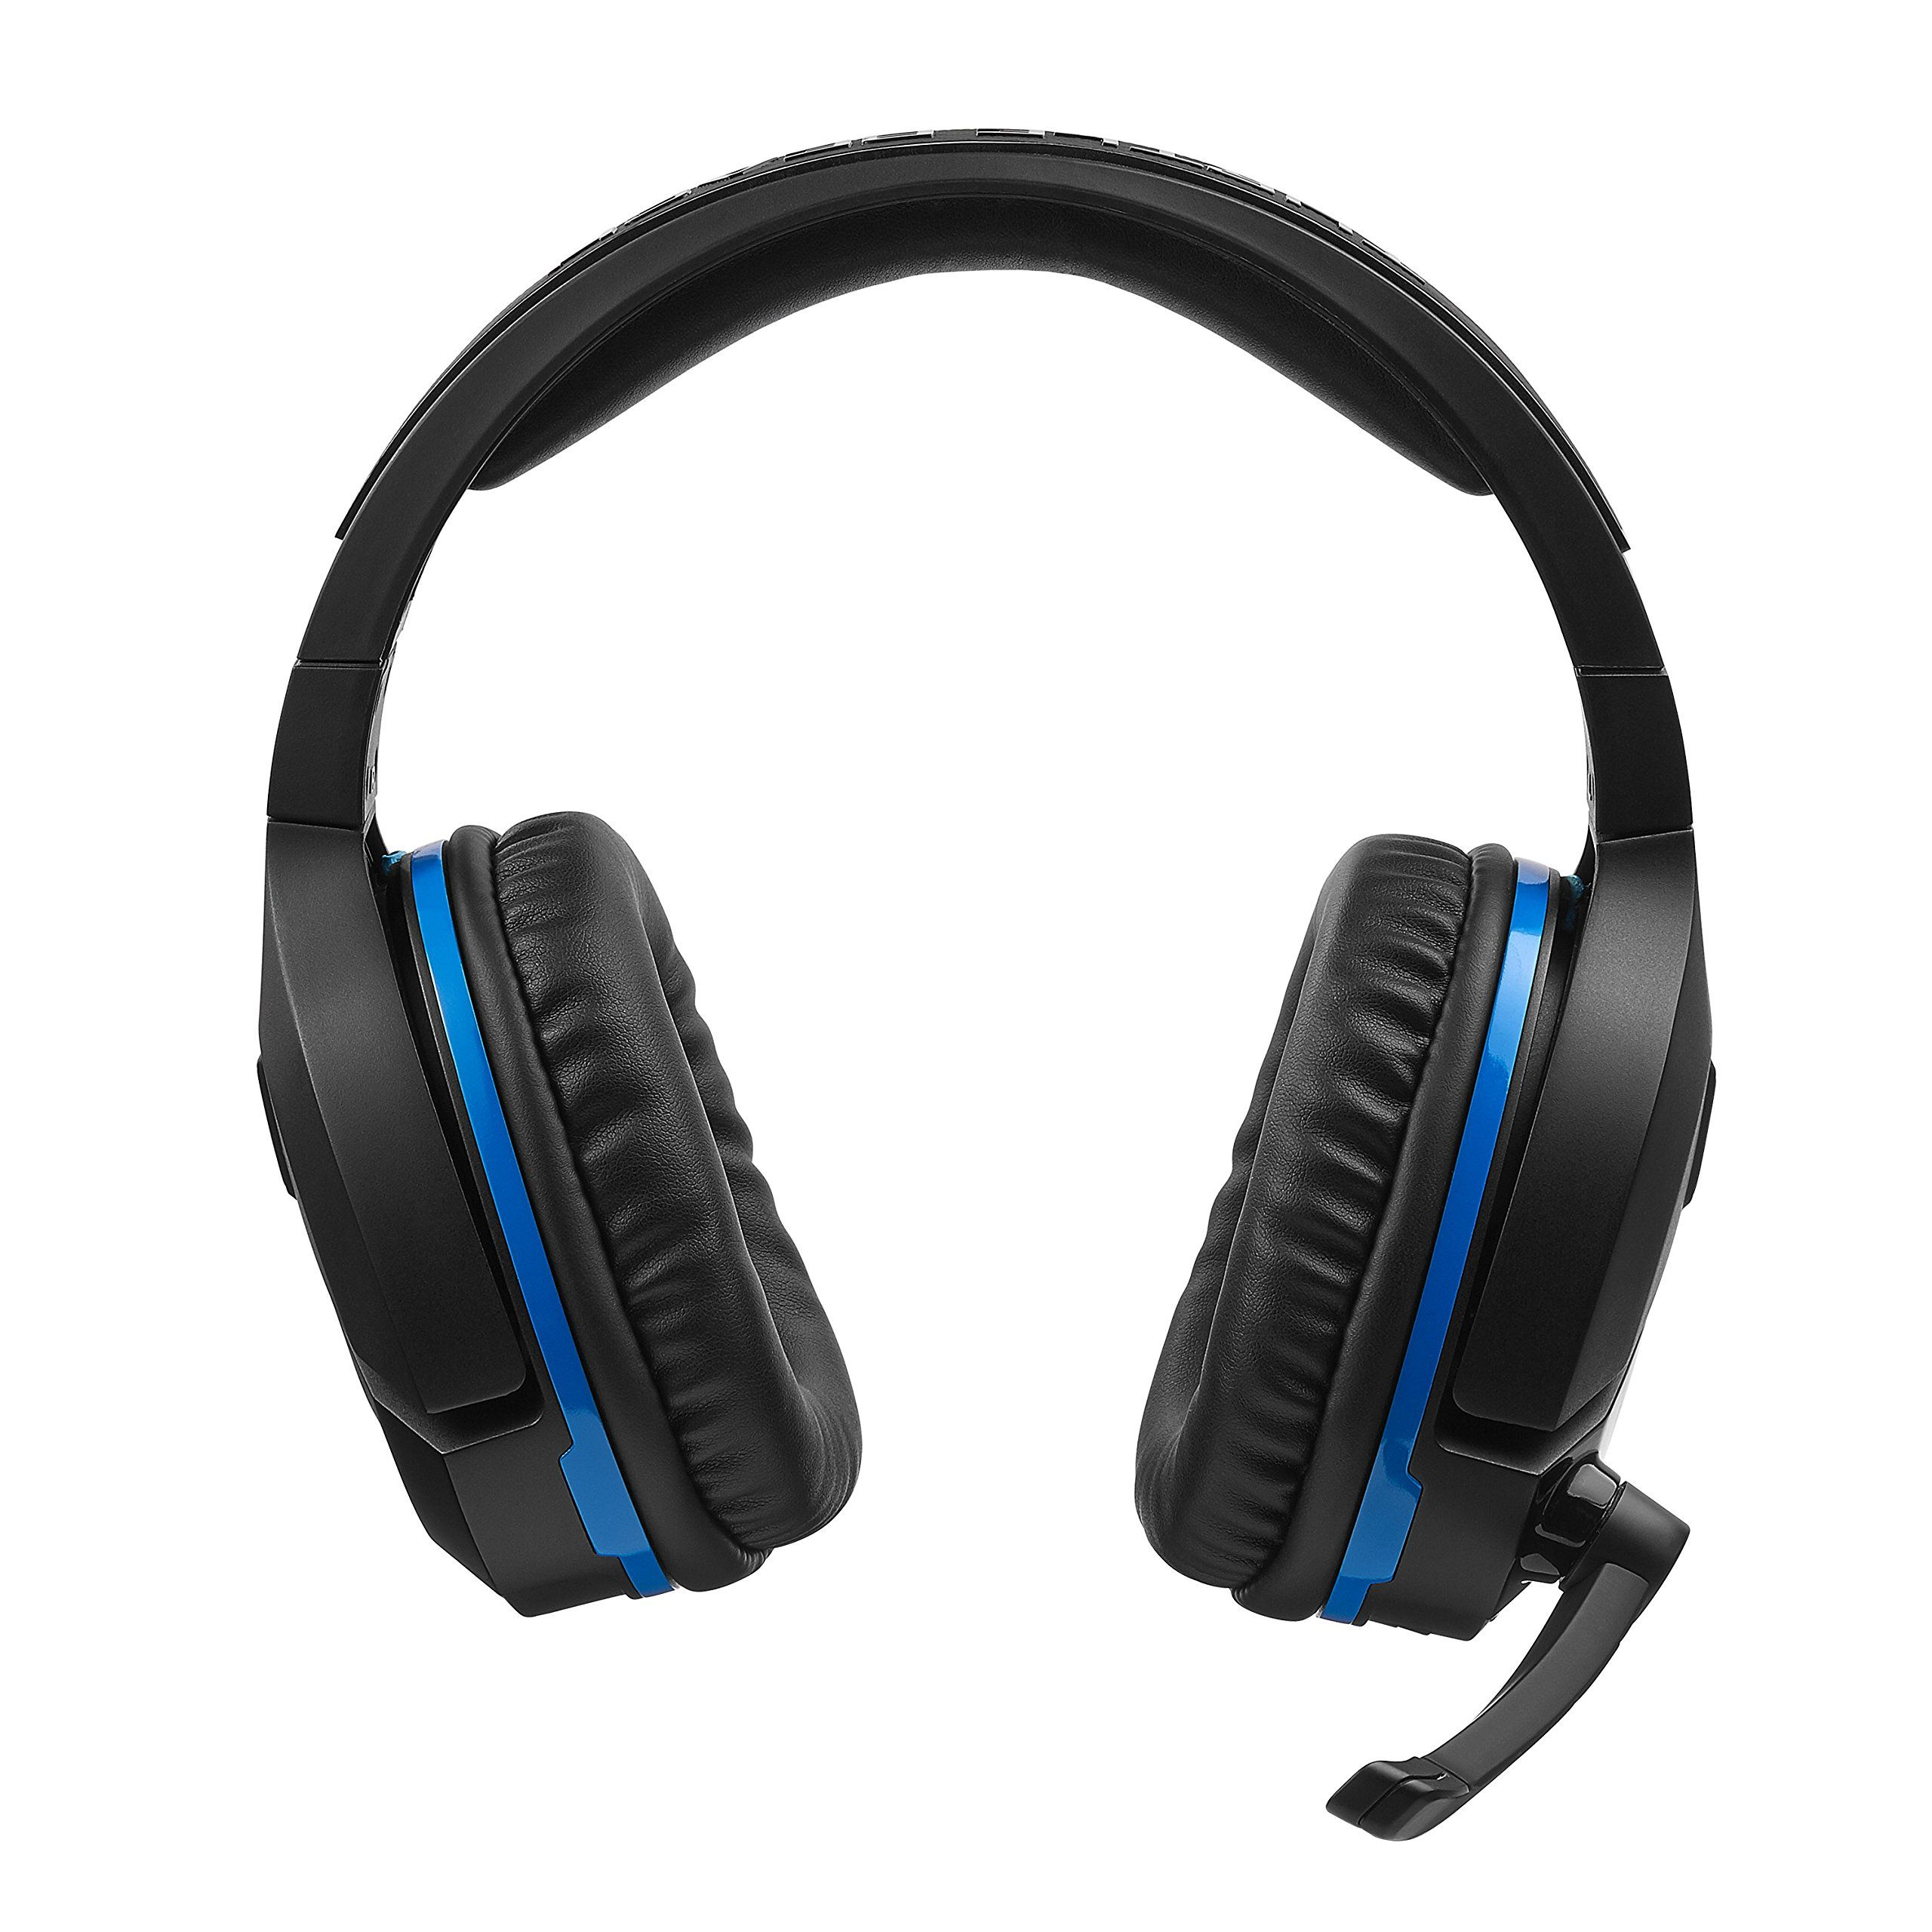 Turtle Beach Stealth 700 Premium Wireless Surround Sound Gaming Headset For Playstation 4 Pro An With Images Wireless Surround Sound Wireless Gaming Headset Gaming Headset